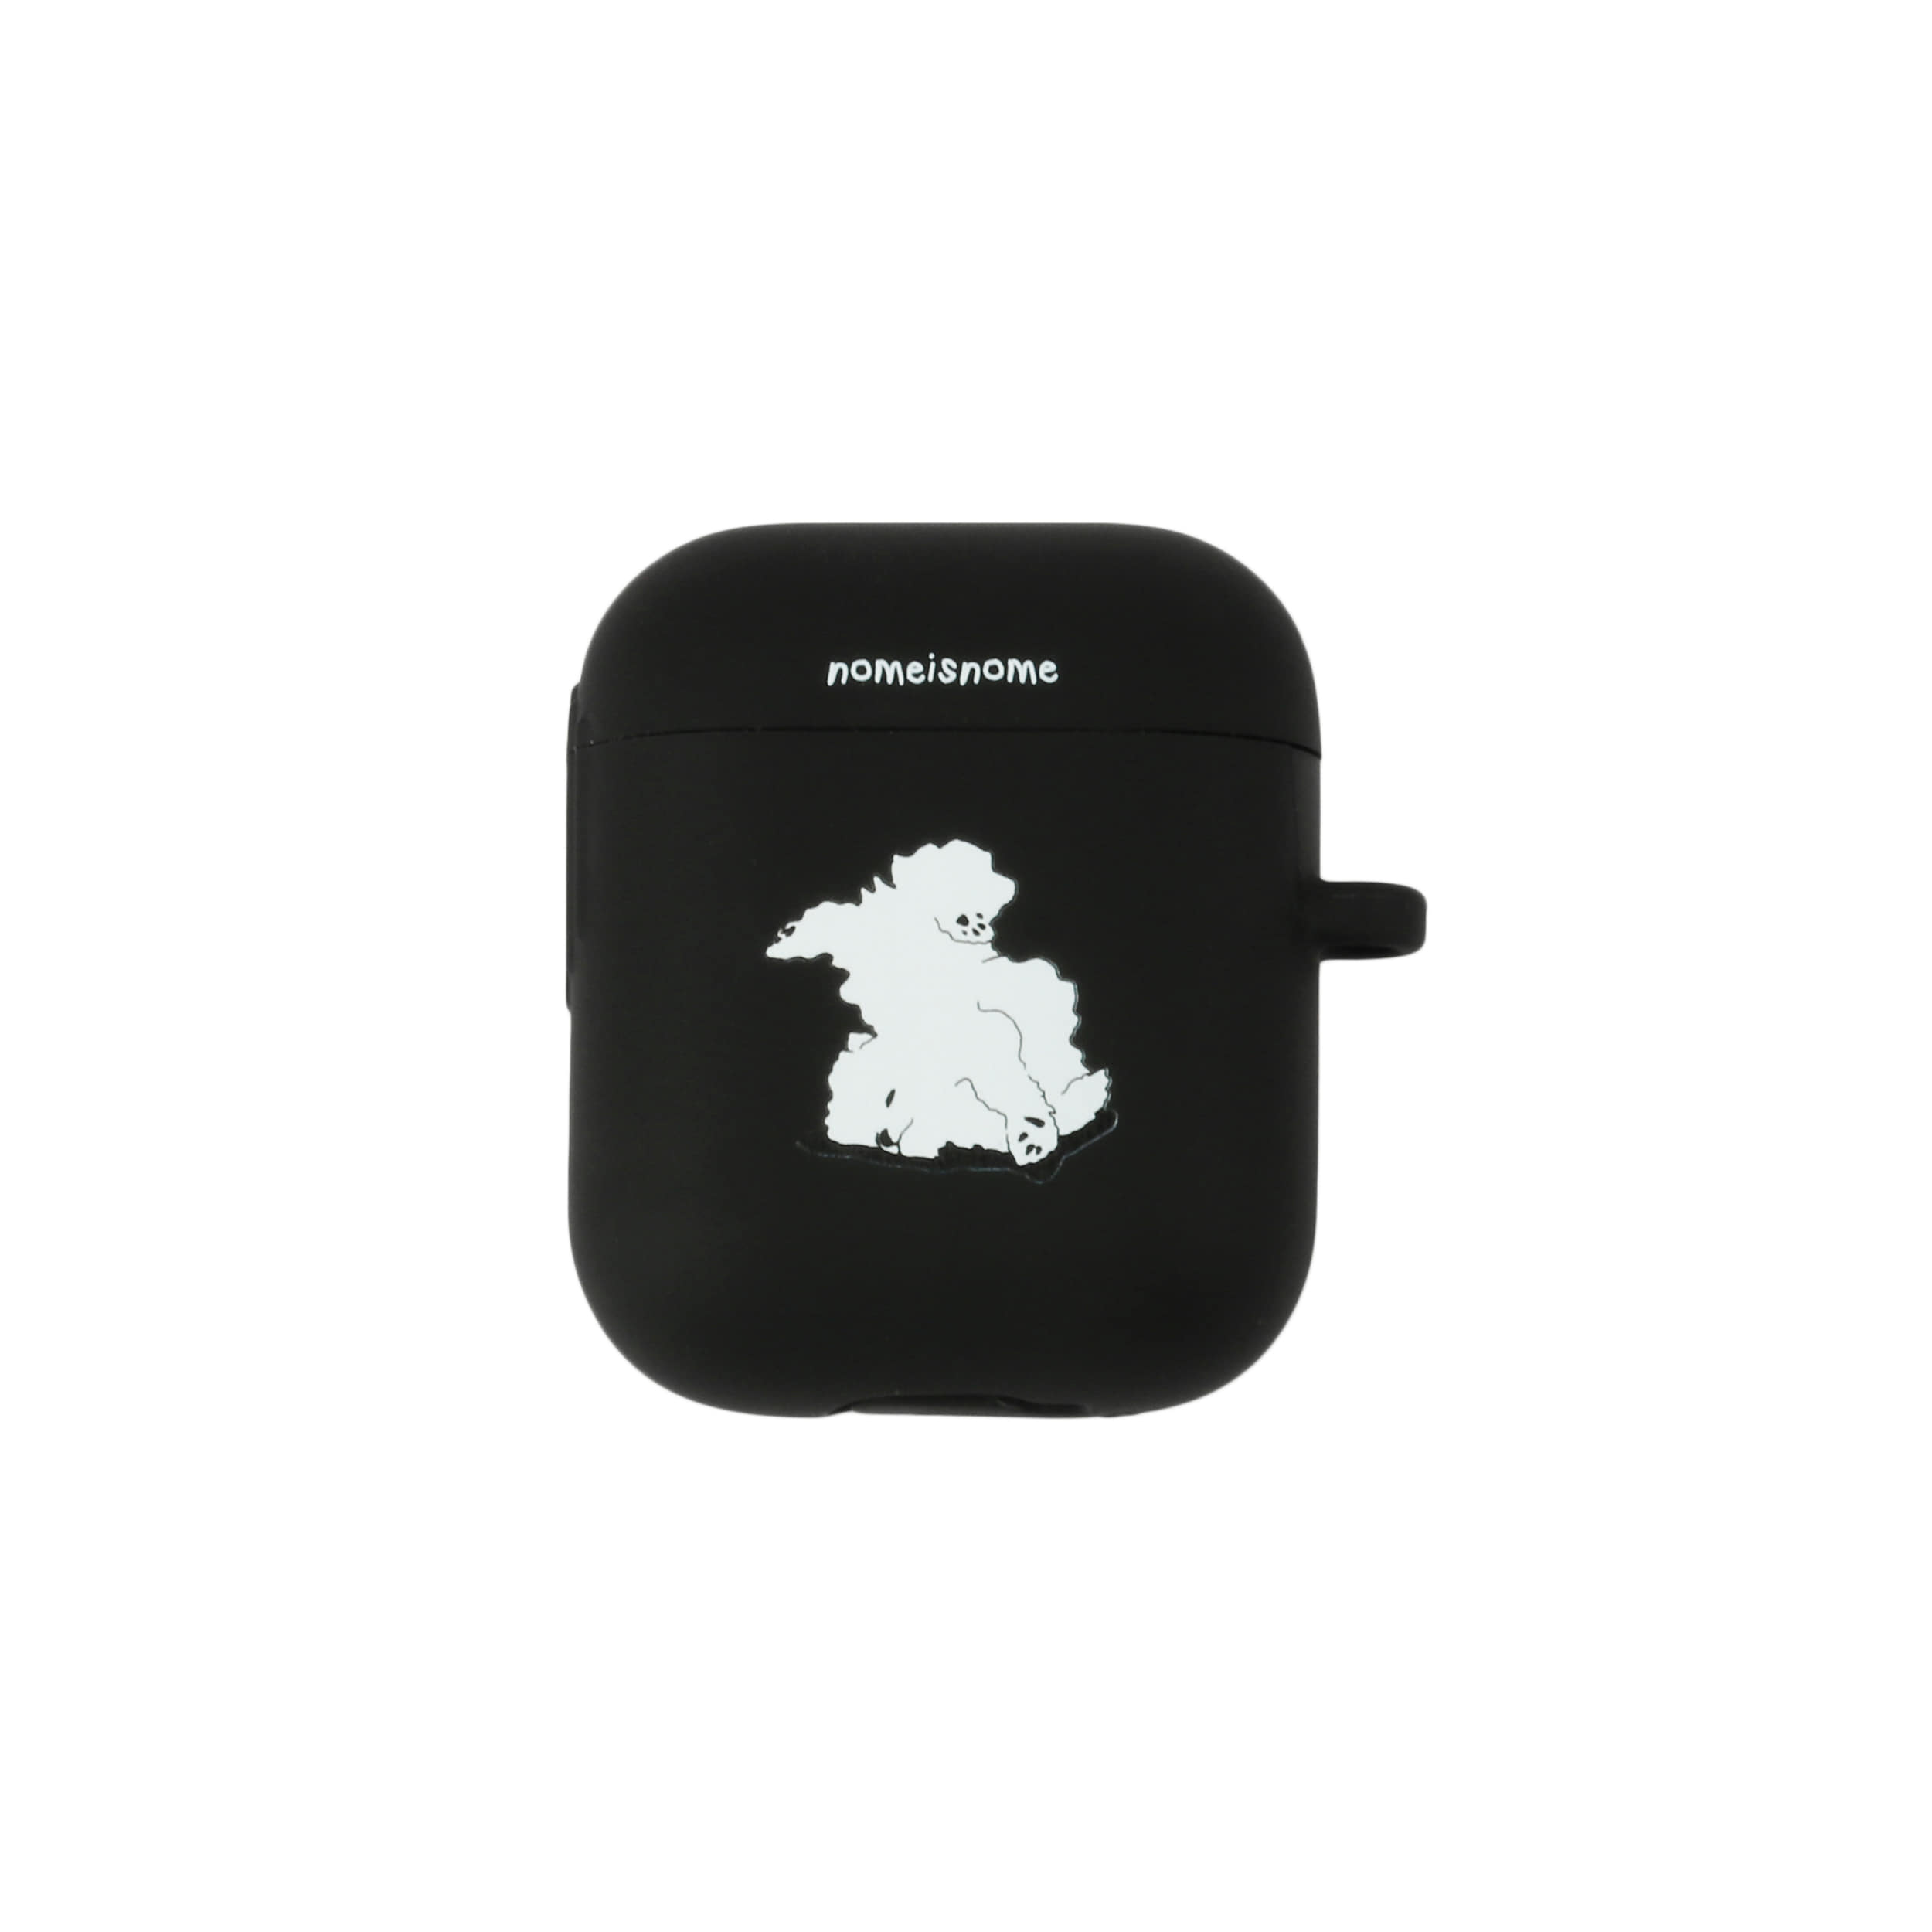 fogbownome black no.2 / airpods case